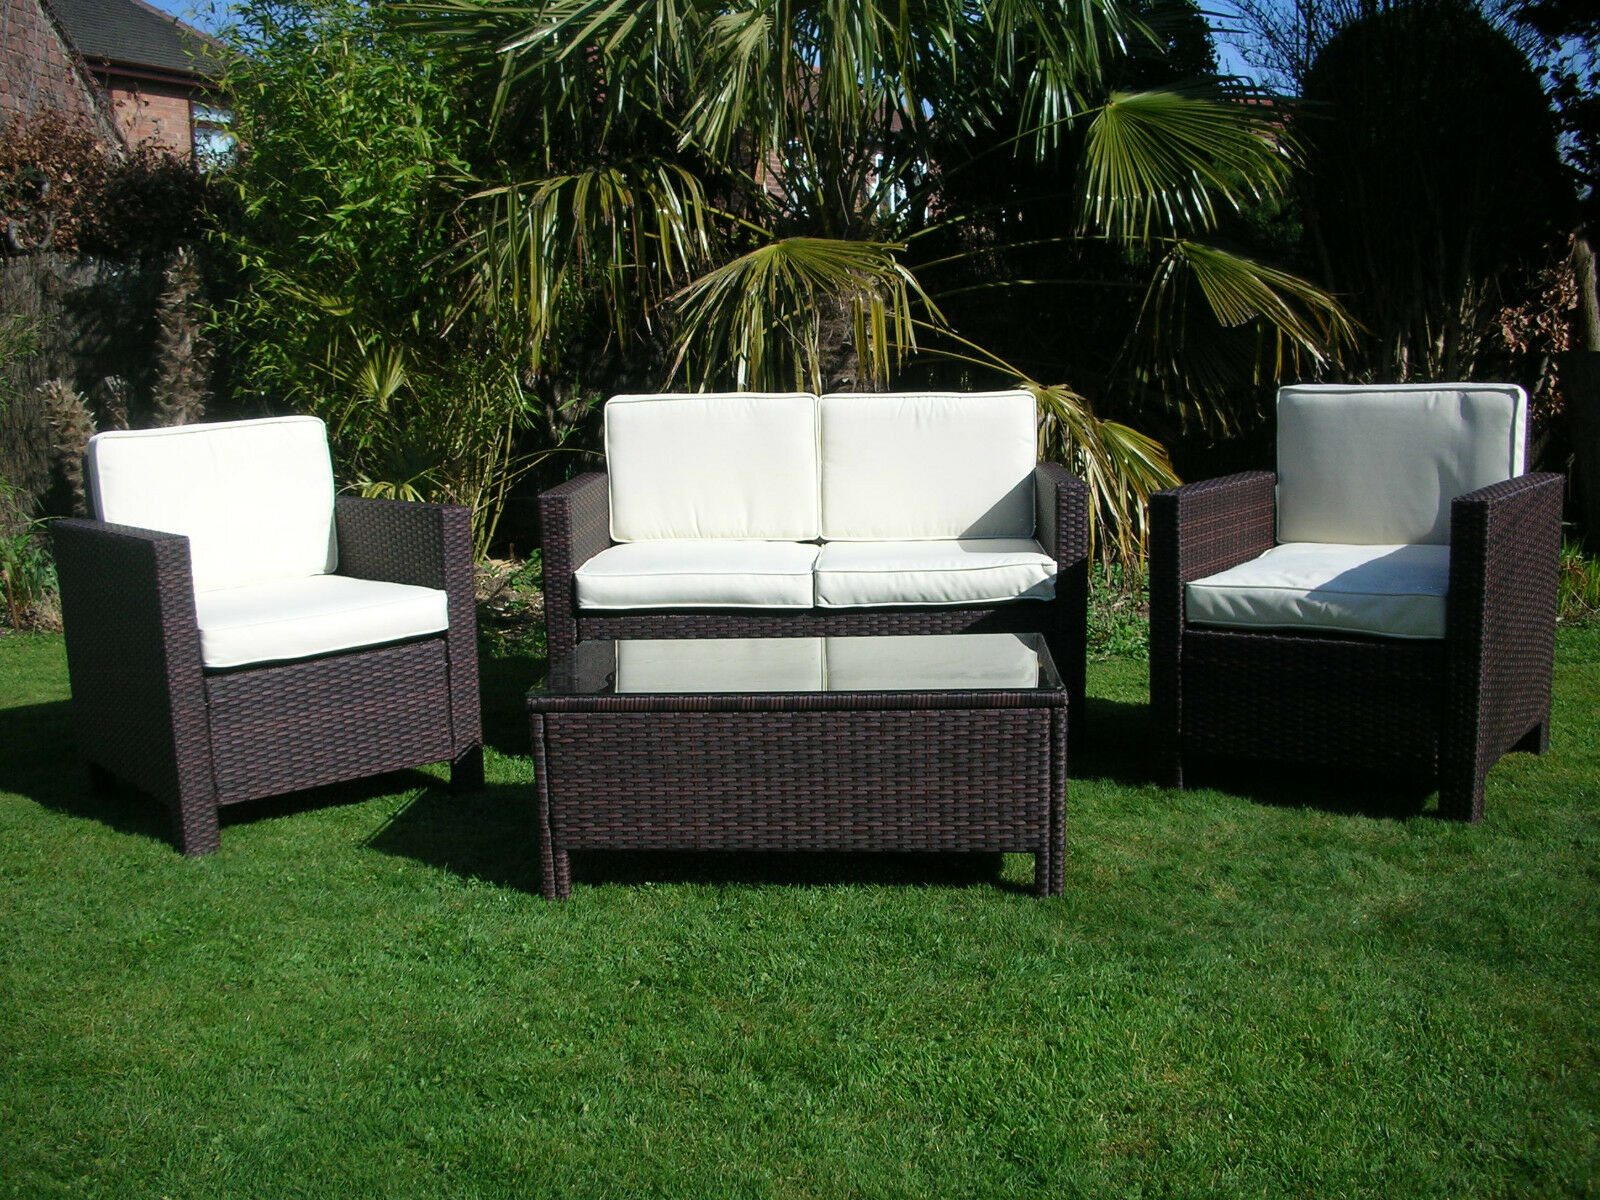 New garden rattan wicker outdoor conservatory furniture set table chairs brown ebay - Garden furniture table and chairs ...